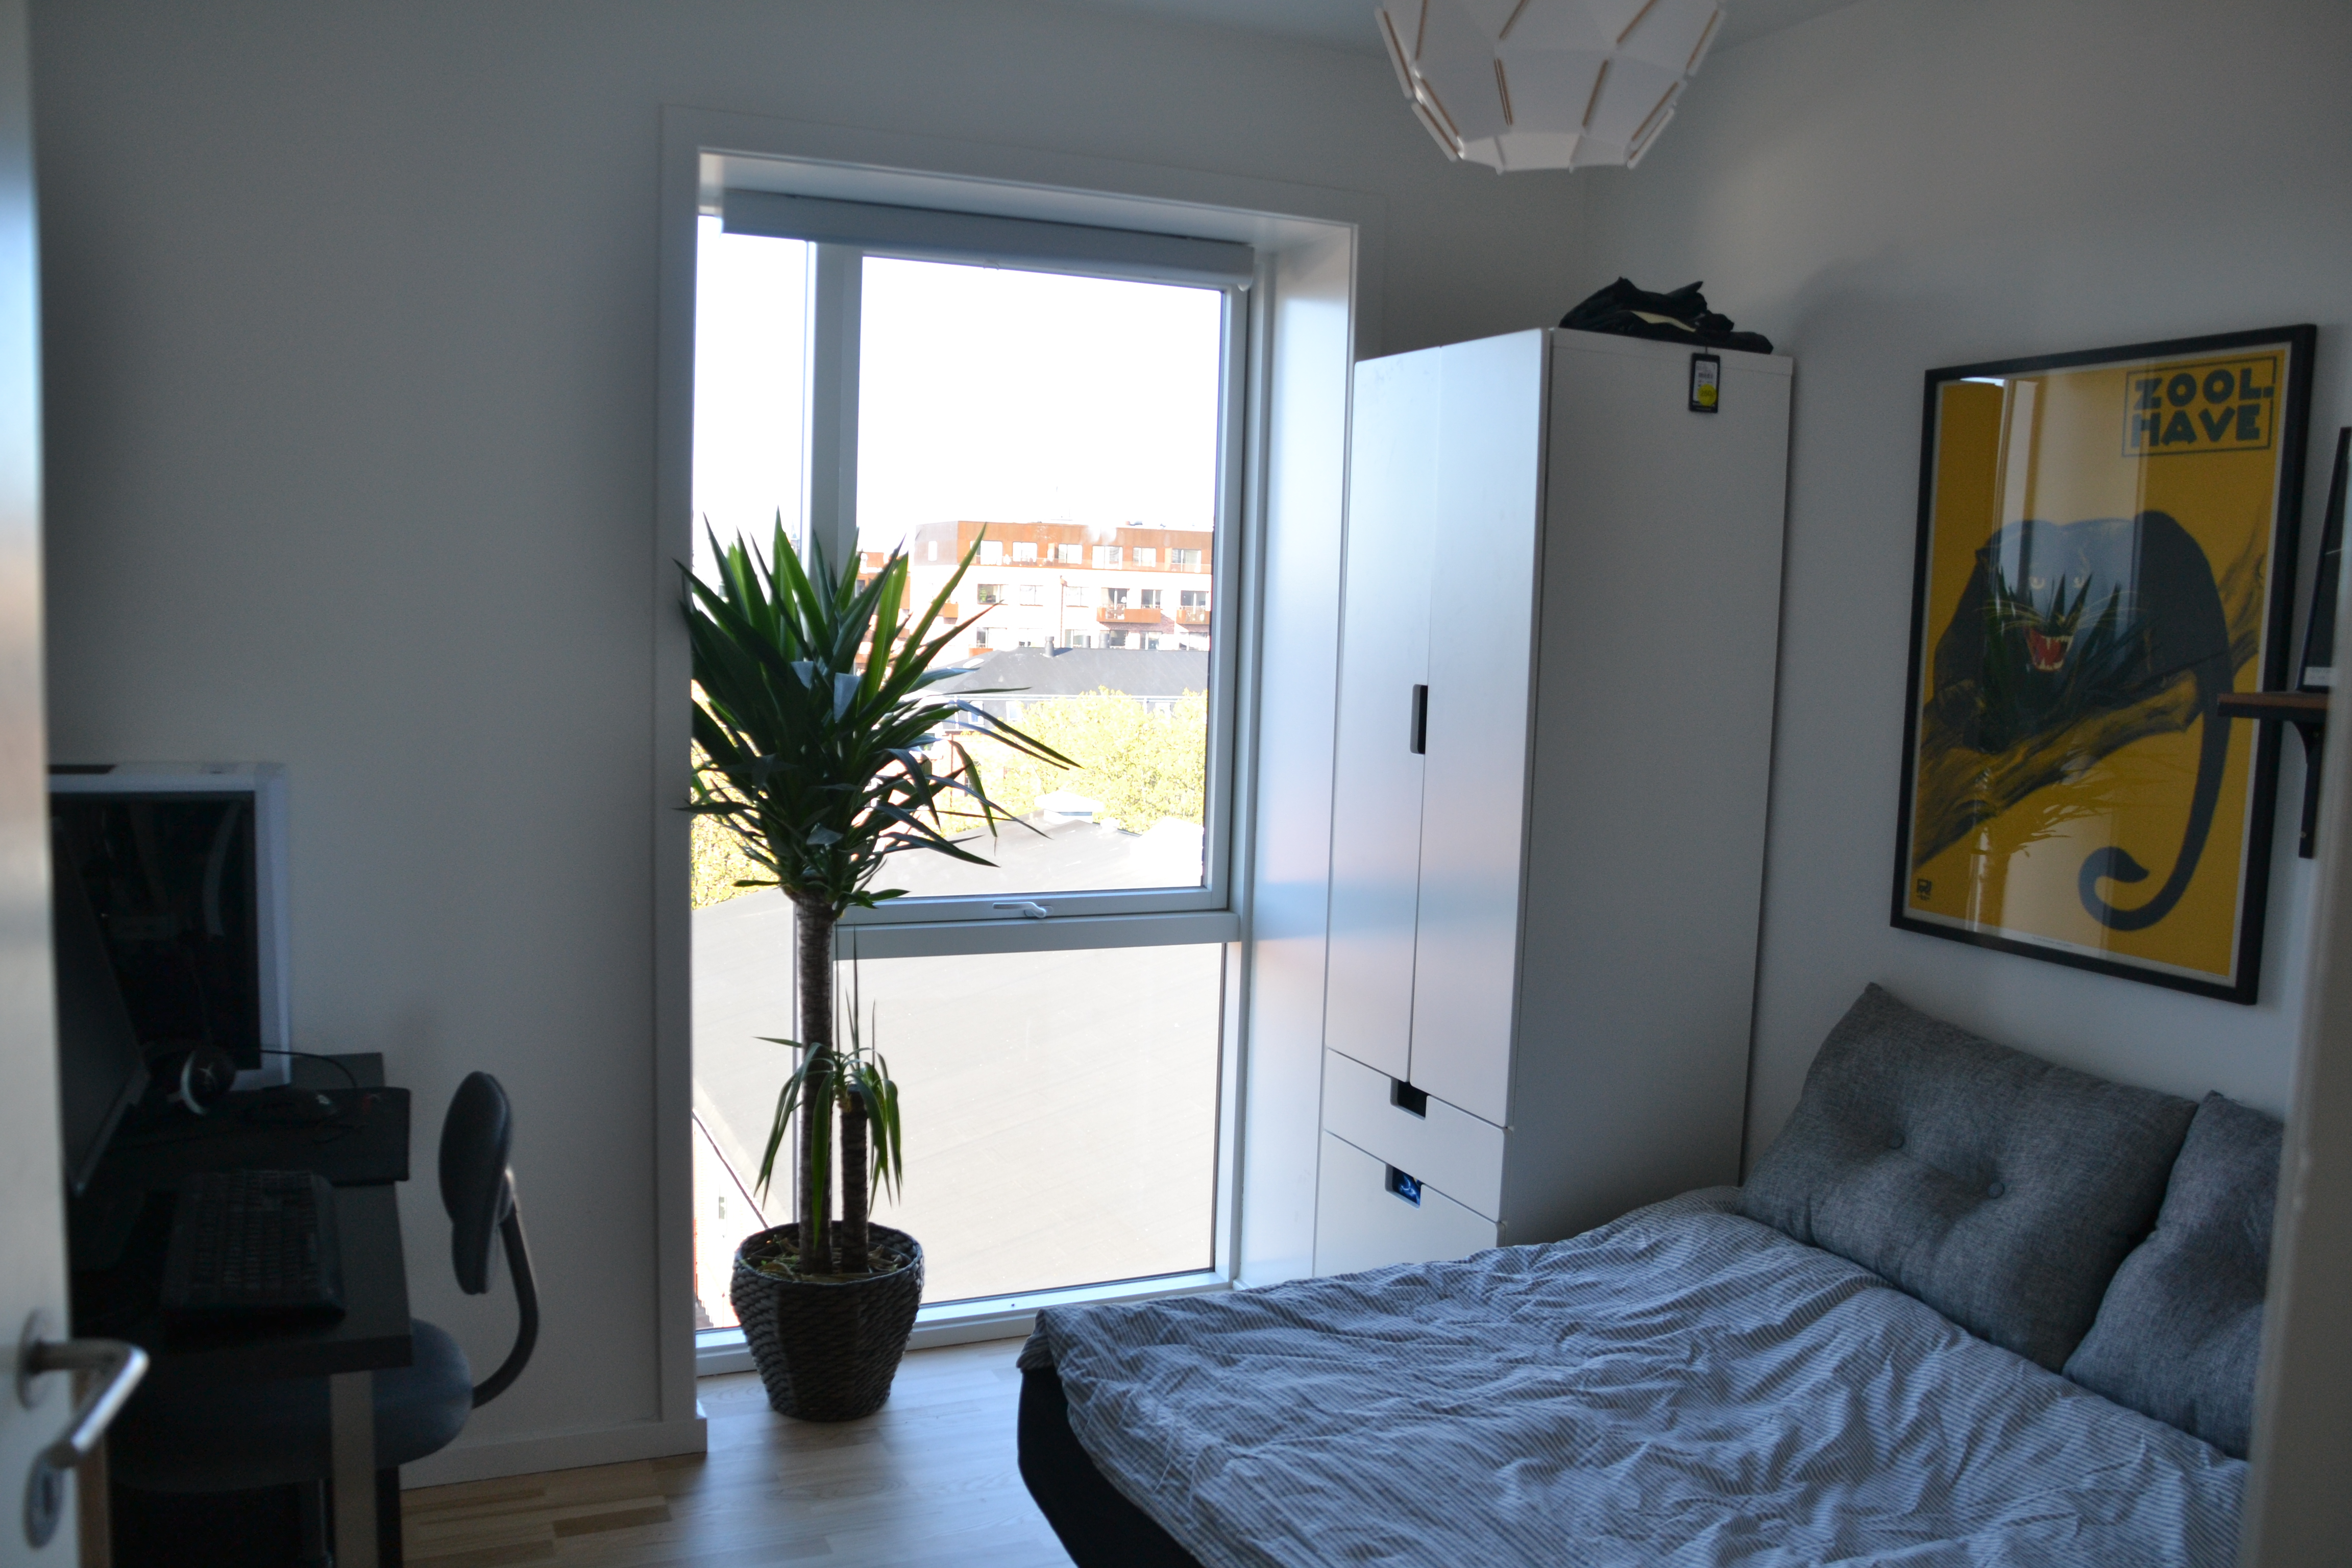 Searching for Danish or international roommate for half a year